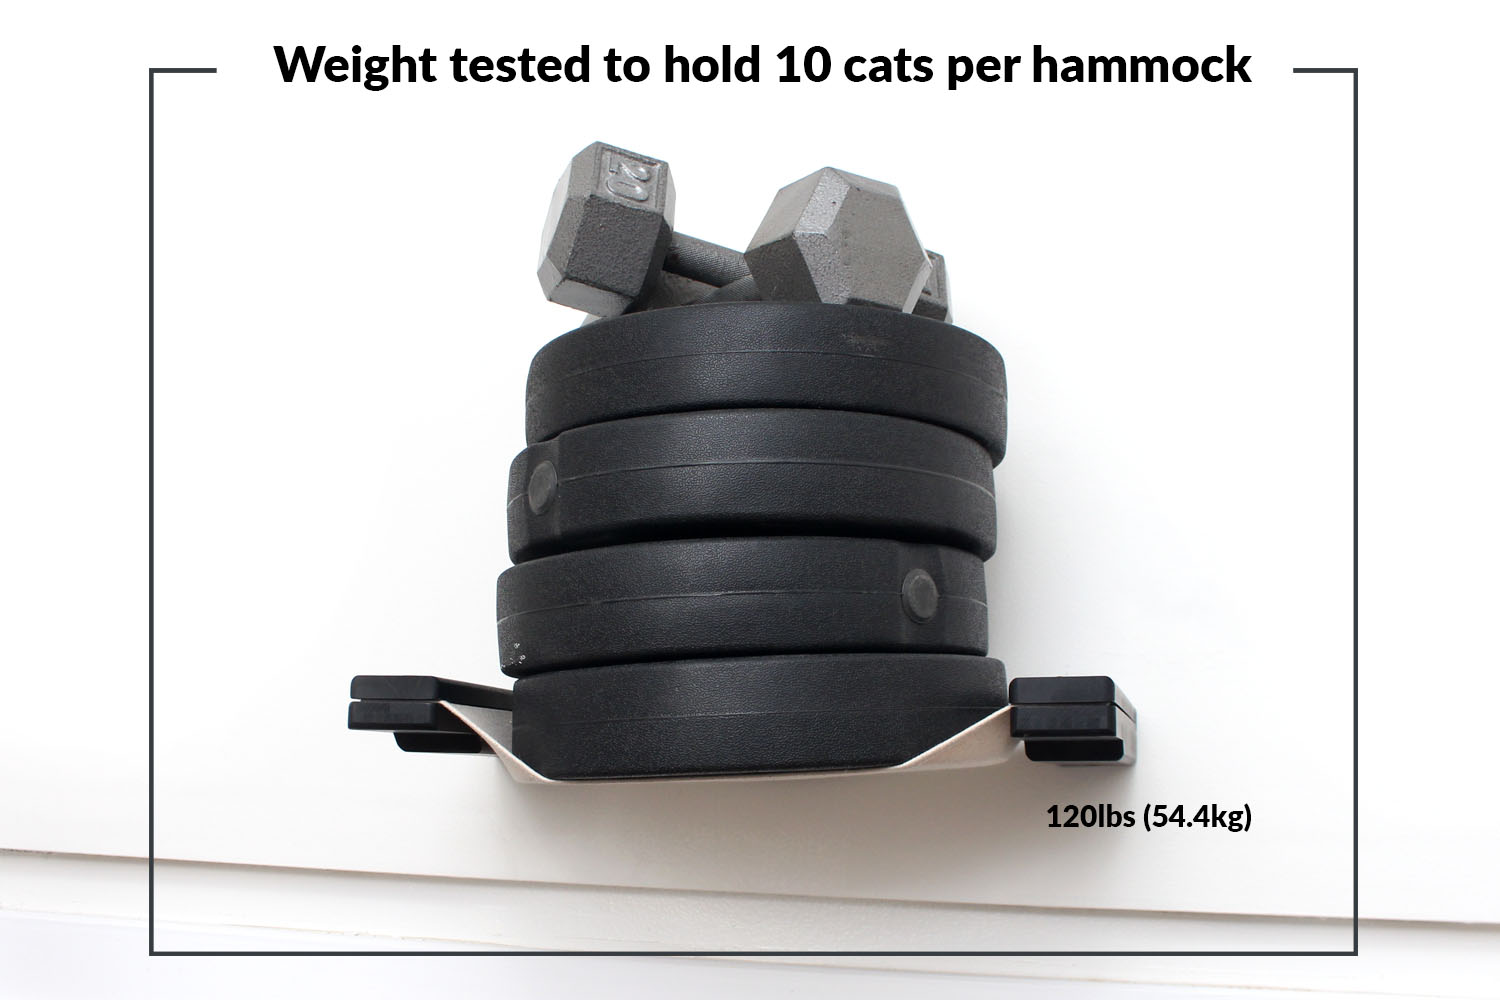 120 pounds of weights on cat lounge as example of weight capacity